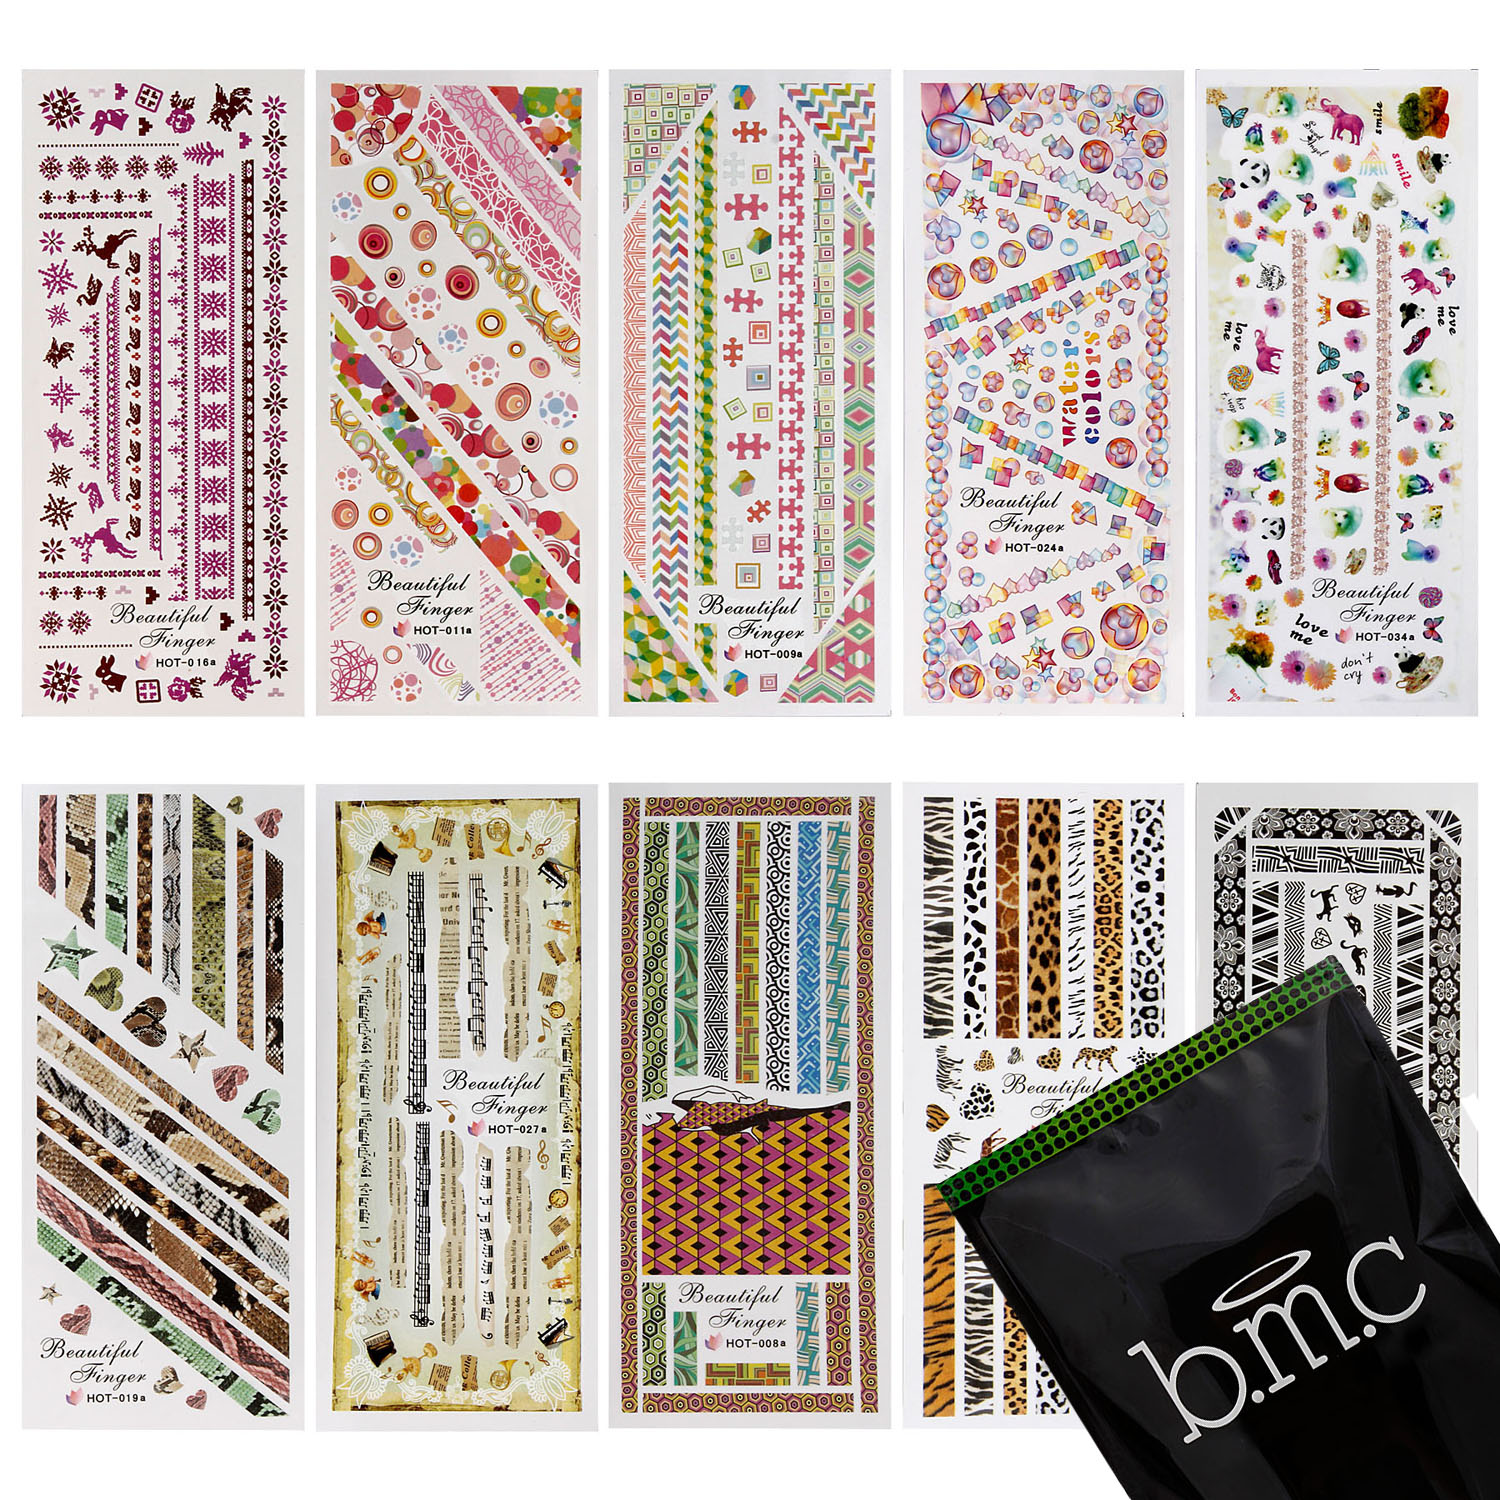 BMC 10 Sheet Nail Art Water Transfer Stickers Tattoo Effects Decoration Decals